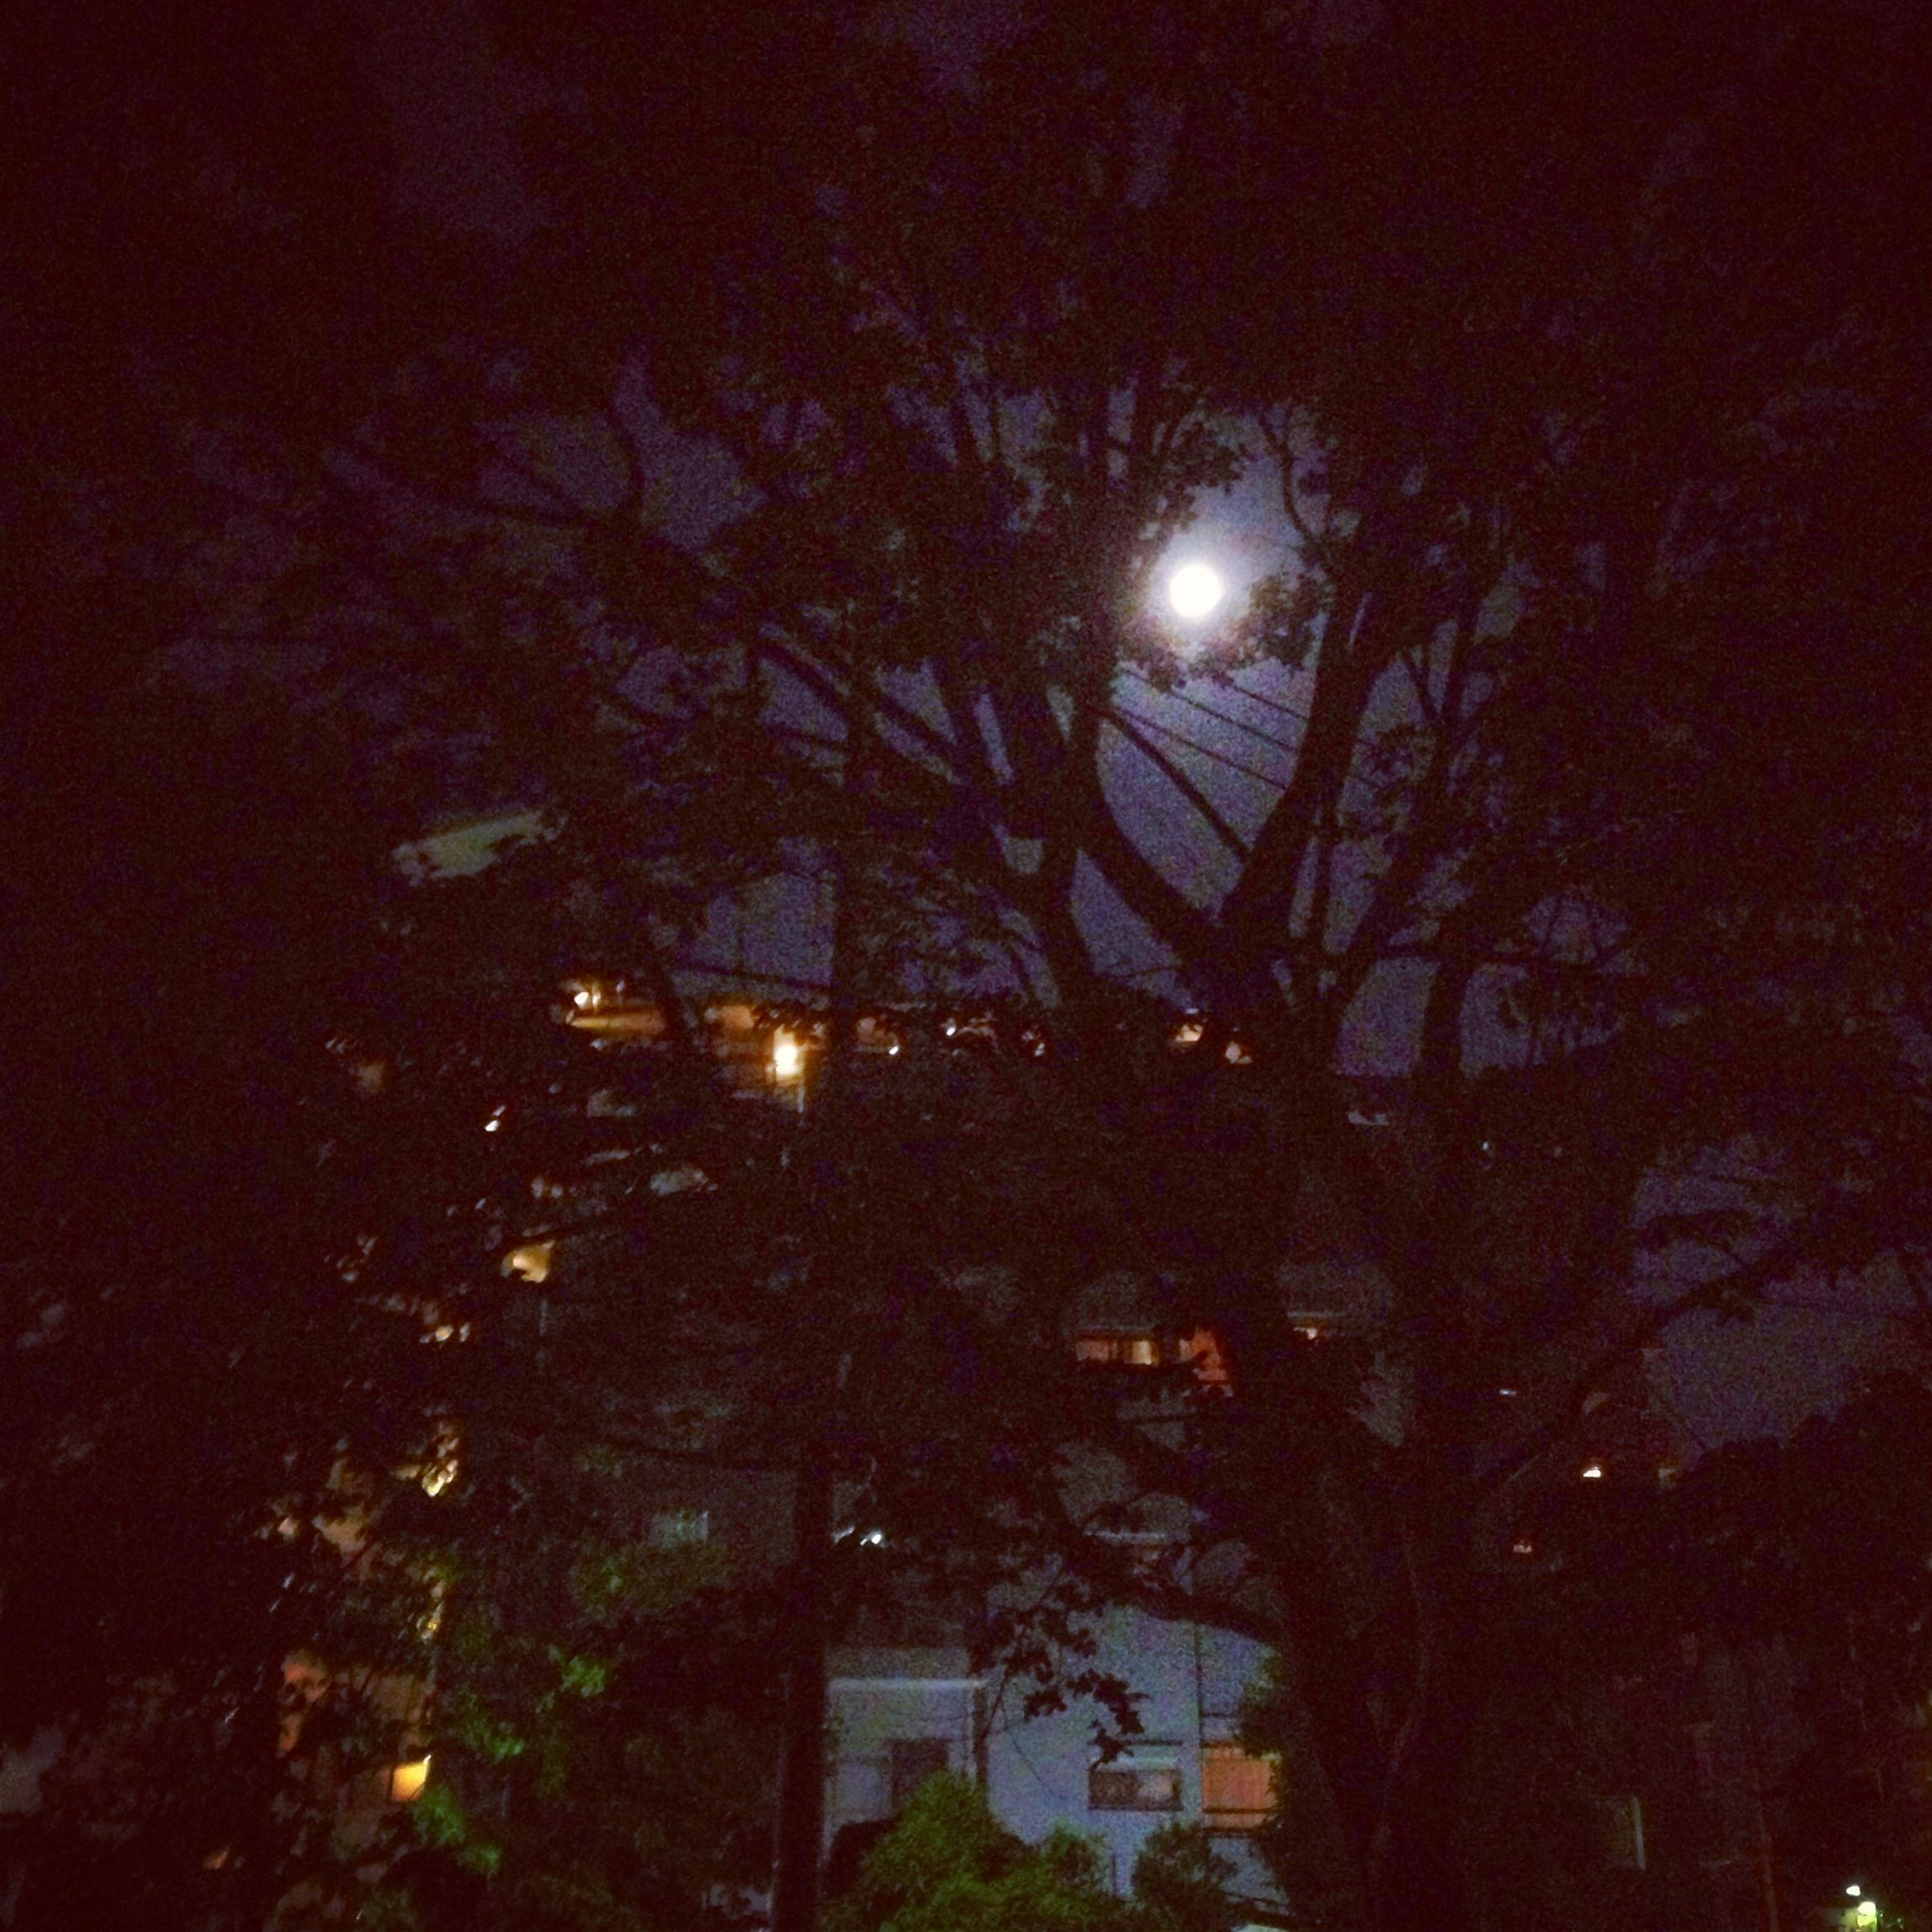 Bright moon. Swaying trees. Warmth. Beauty. Love